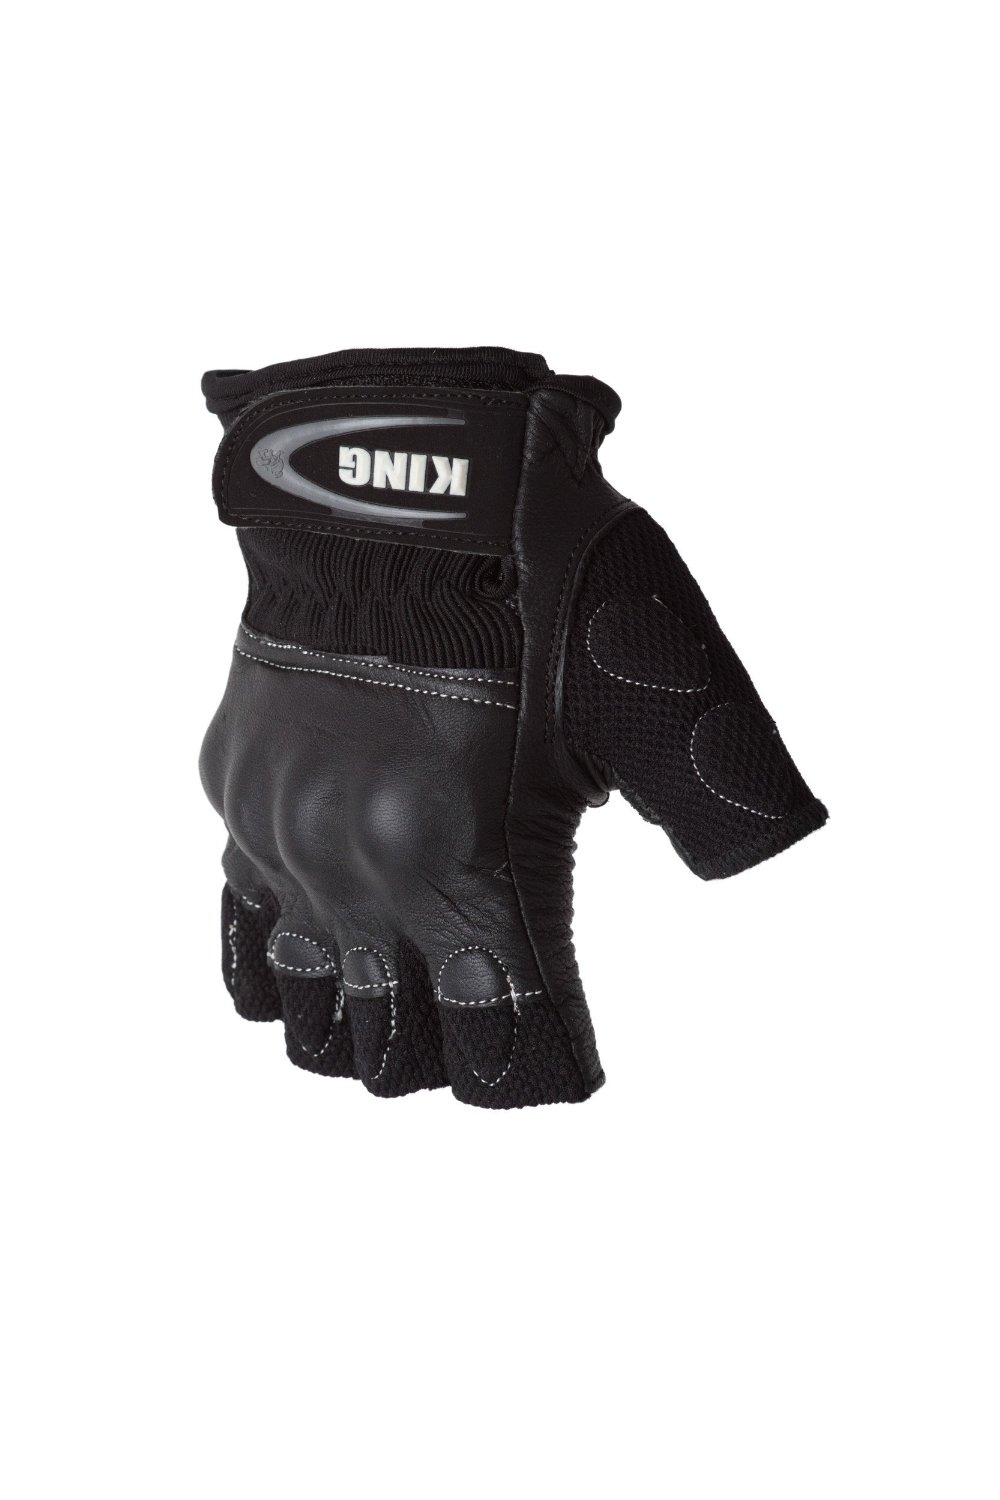 Protect the King Rio Combat Fingerless Armored Motorcycle Gloves (Medium, Black/Black)